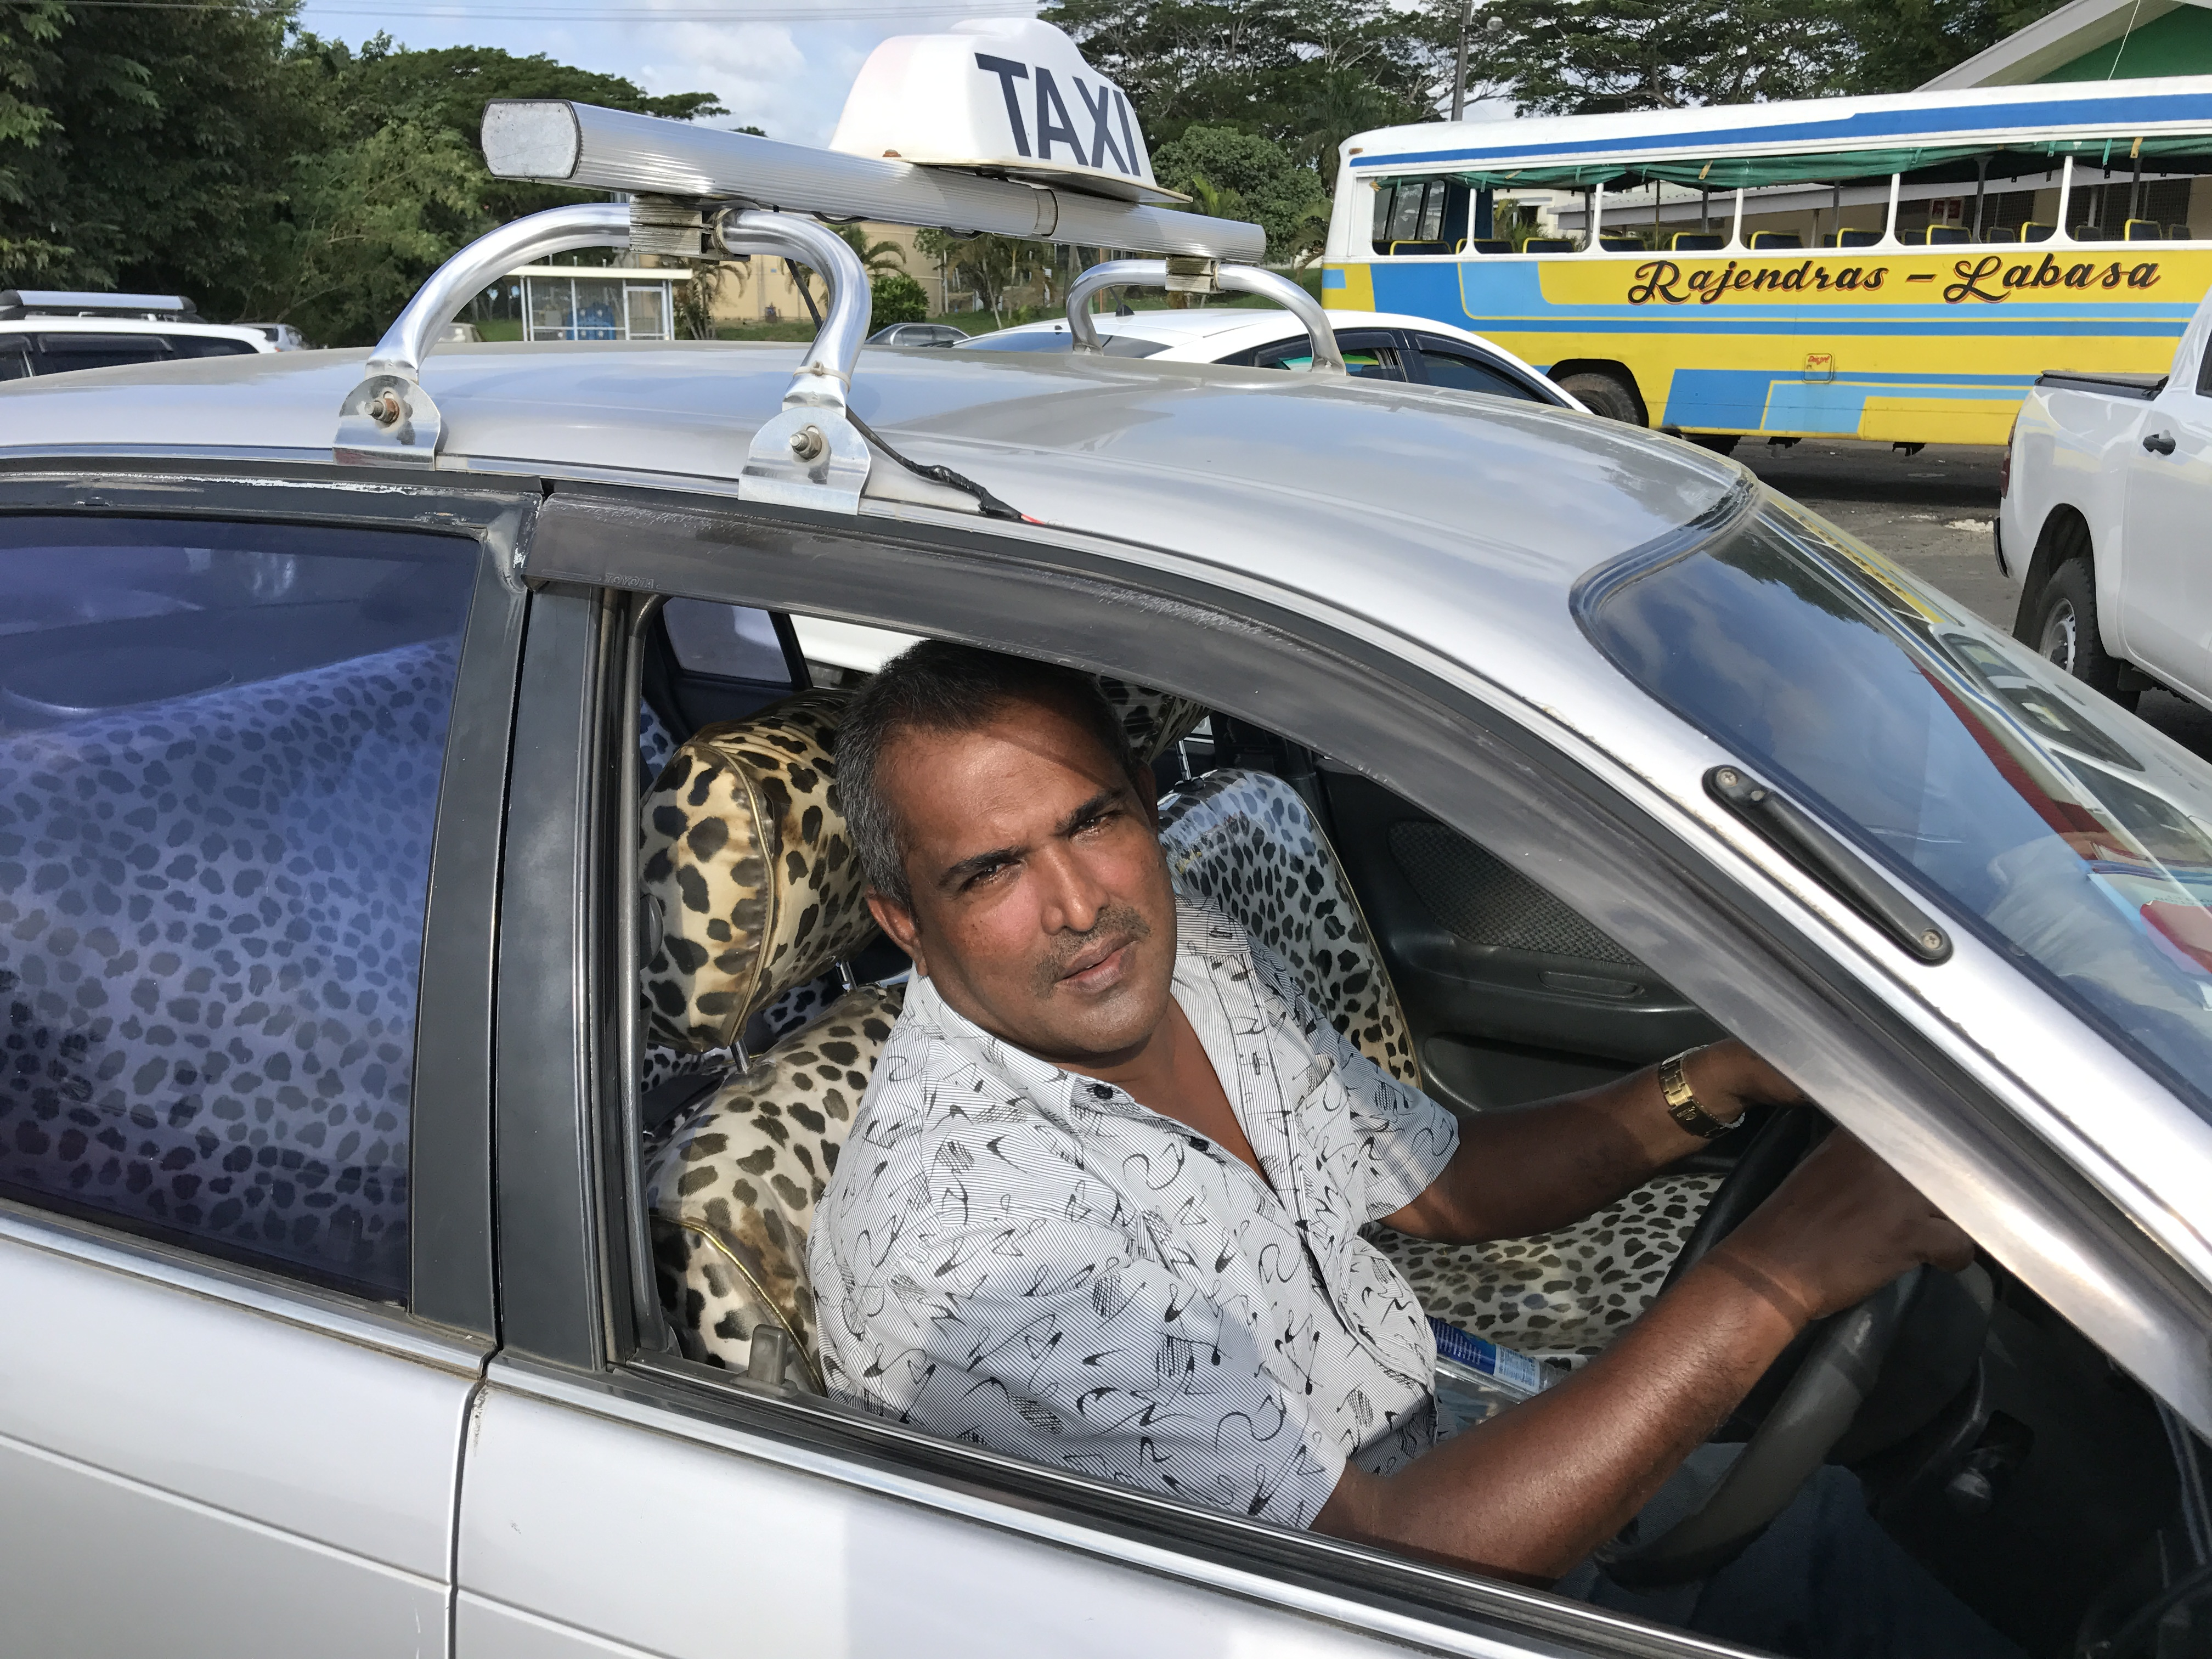 Mahen Pratap a taxi driver based at Labasa Hospital who saw the alleged abductor and assisted Police in their search on April 16, 2018. Photo: Shratika Naidu